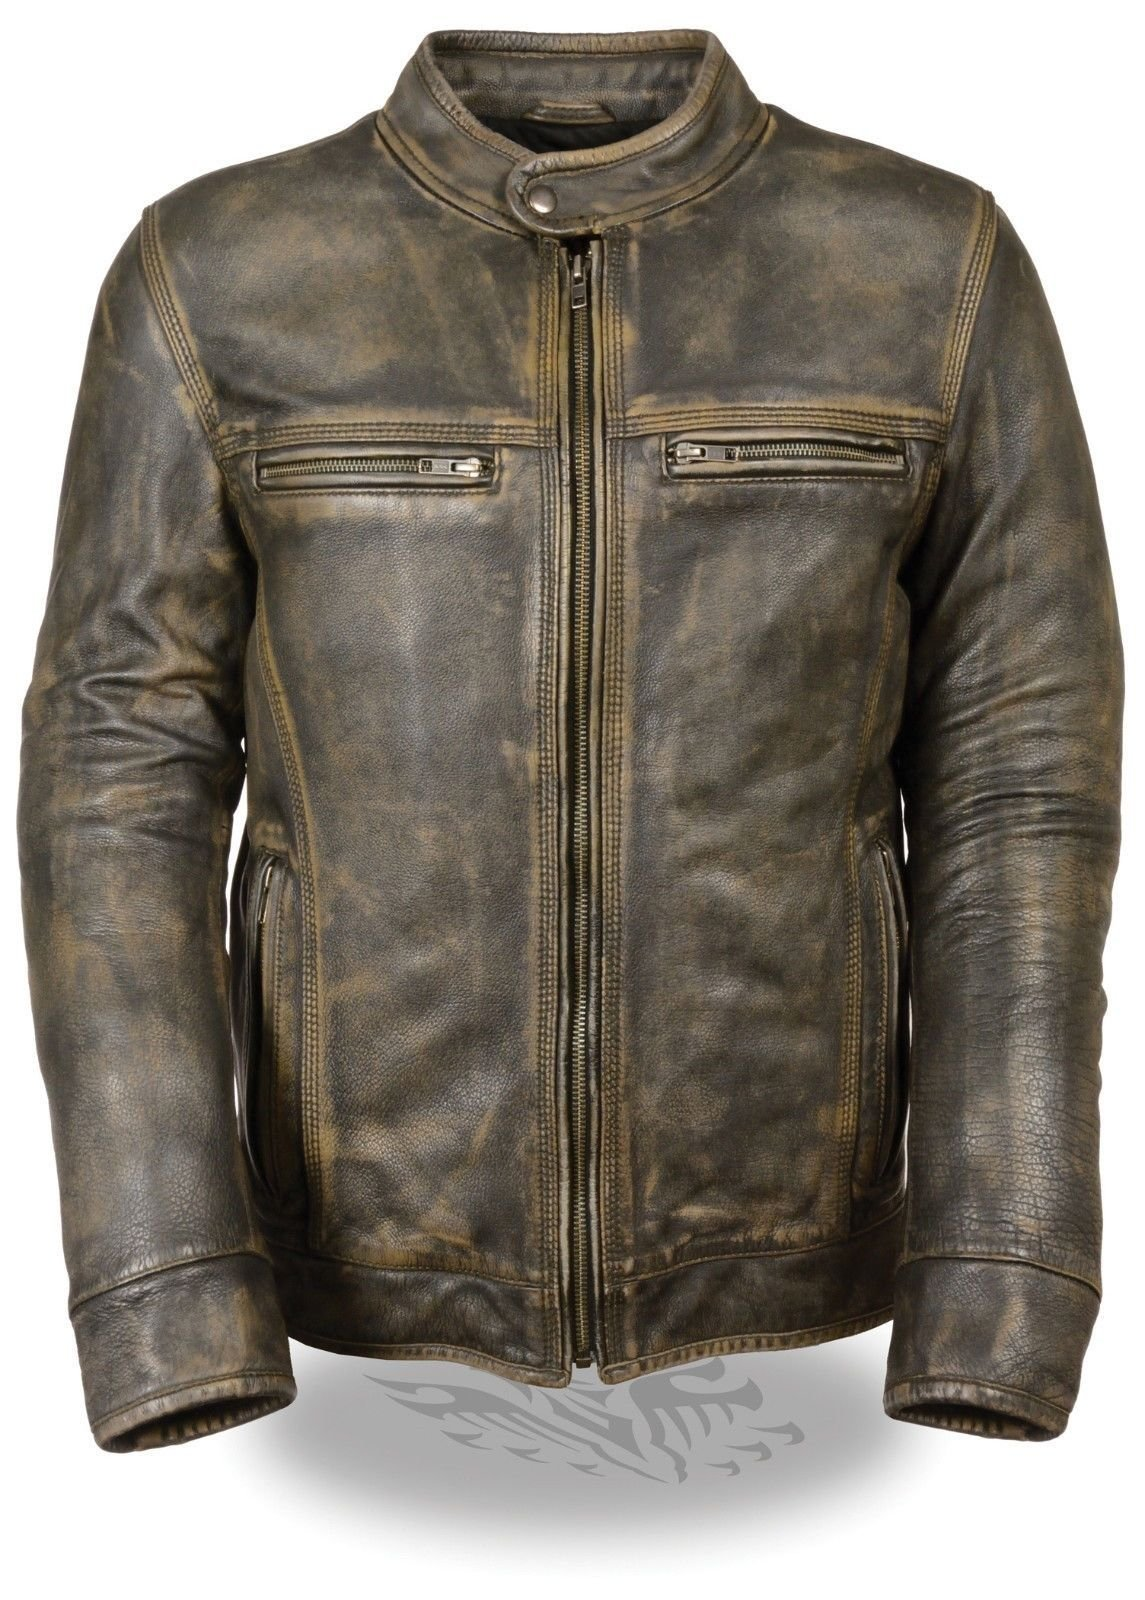 MEN'S MOTORCYCLE DISTRESSED BROWN SPORTY SCOOTER LEATHER JACKET W/2 GUN POCKETS (XL Regular)